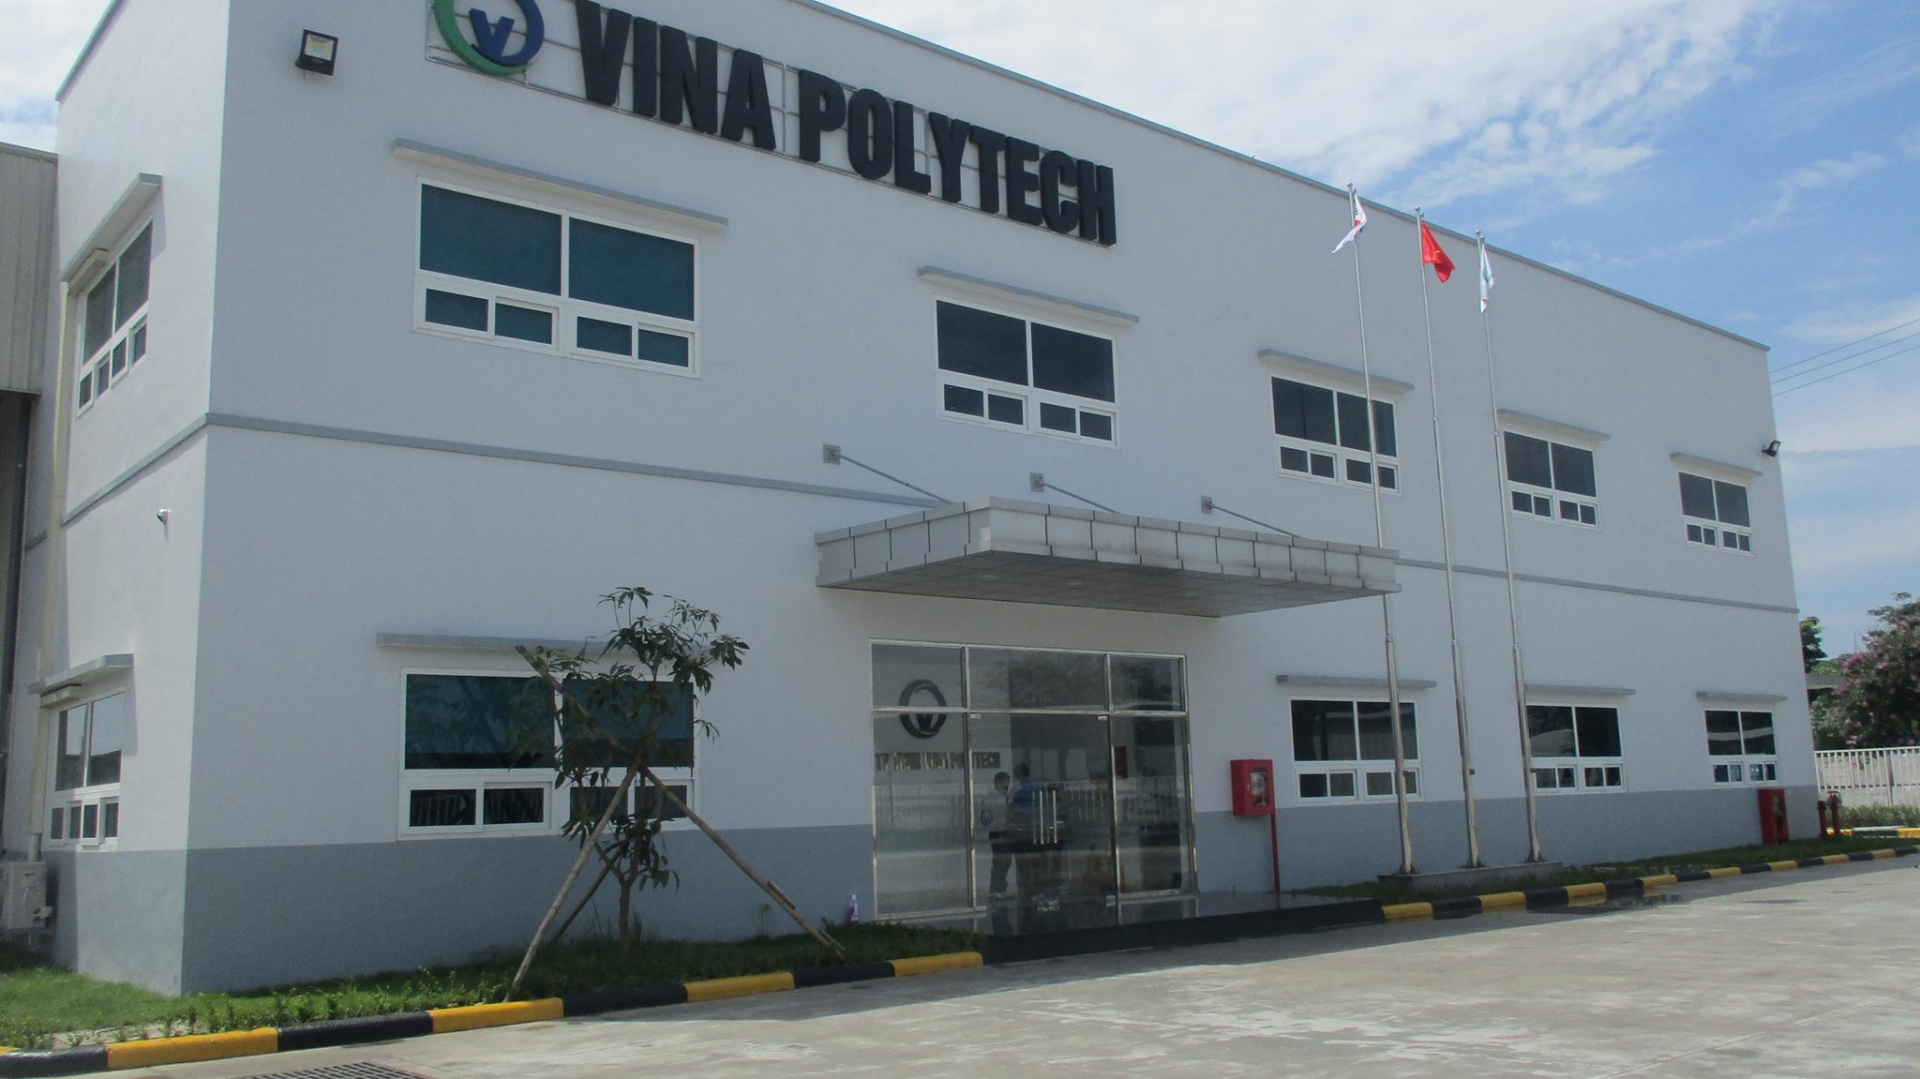 Lotte Chemical has acquired Vietnamese high-tech material company Vina Polytech